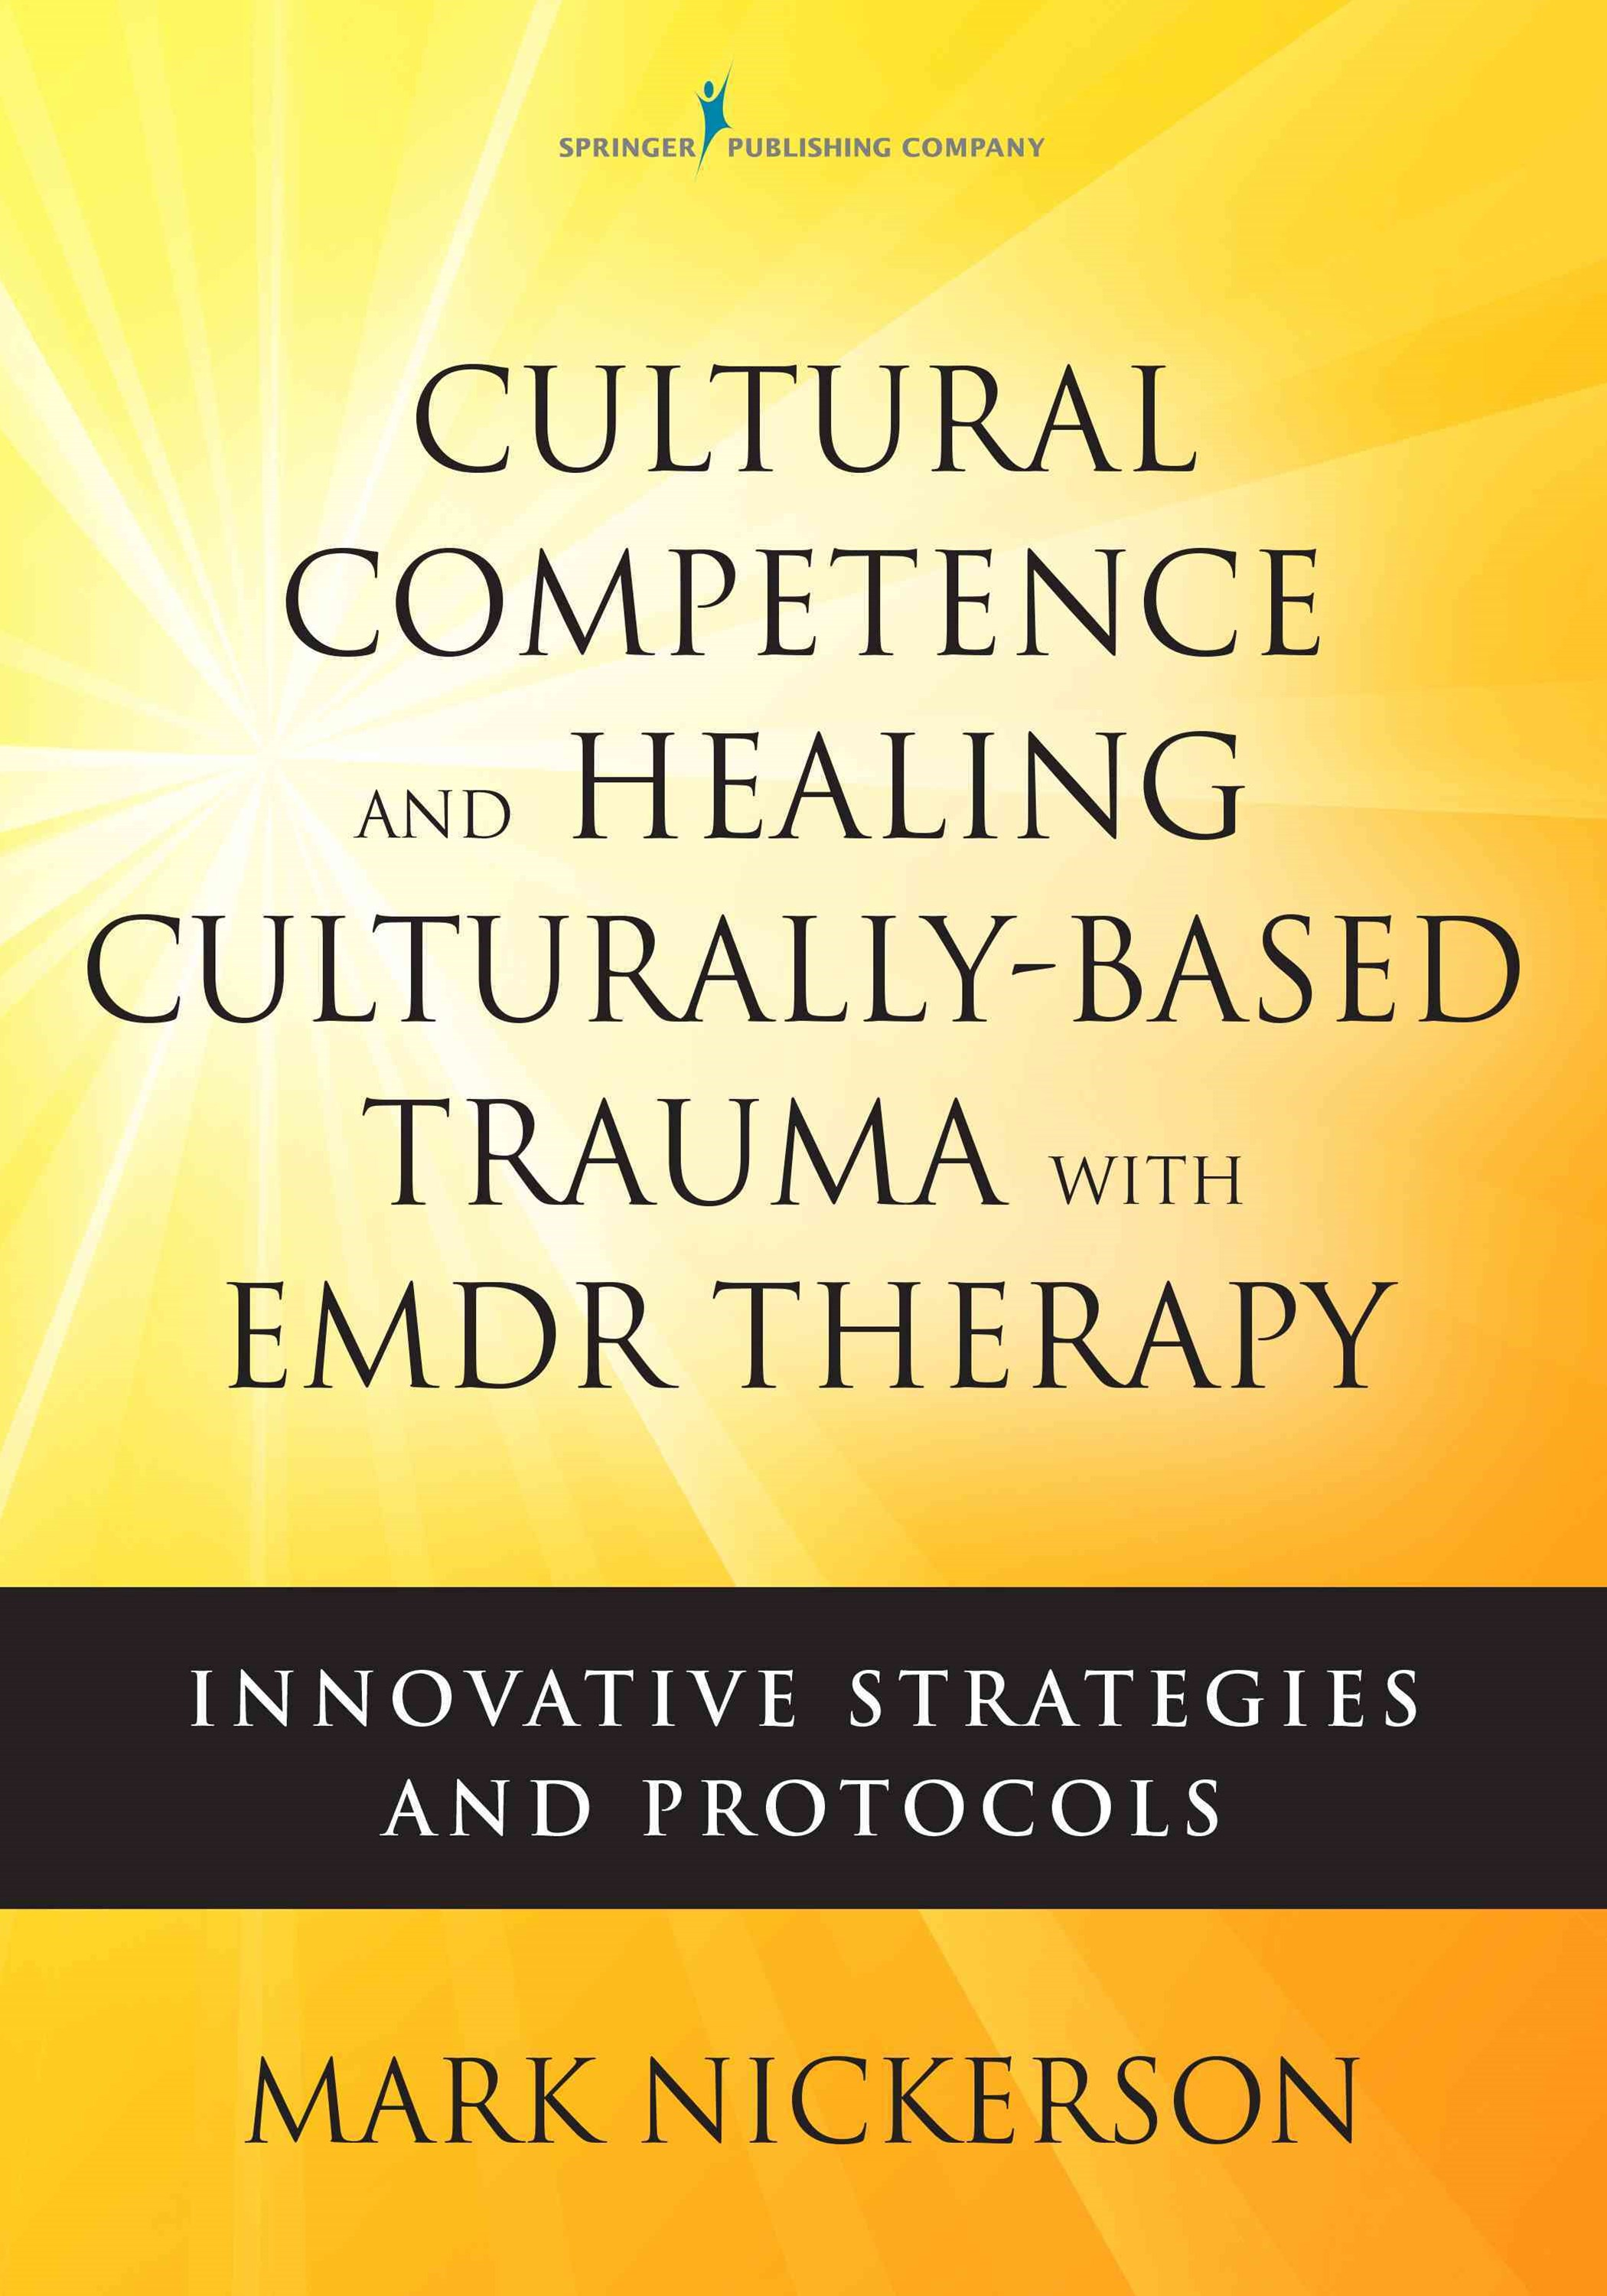 Cultural Competence and Healing Culturally-Based Trauma with Emdr Therapy